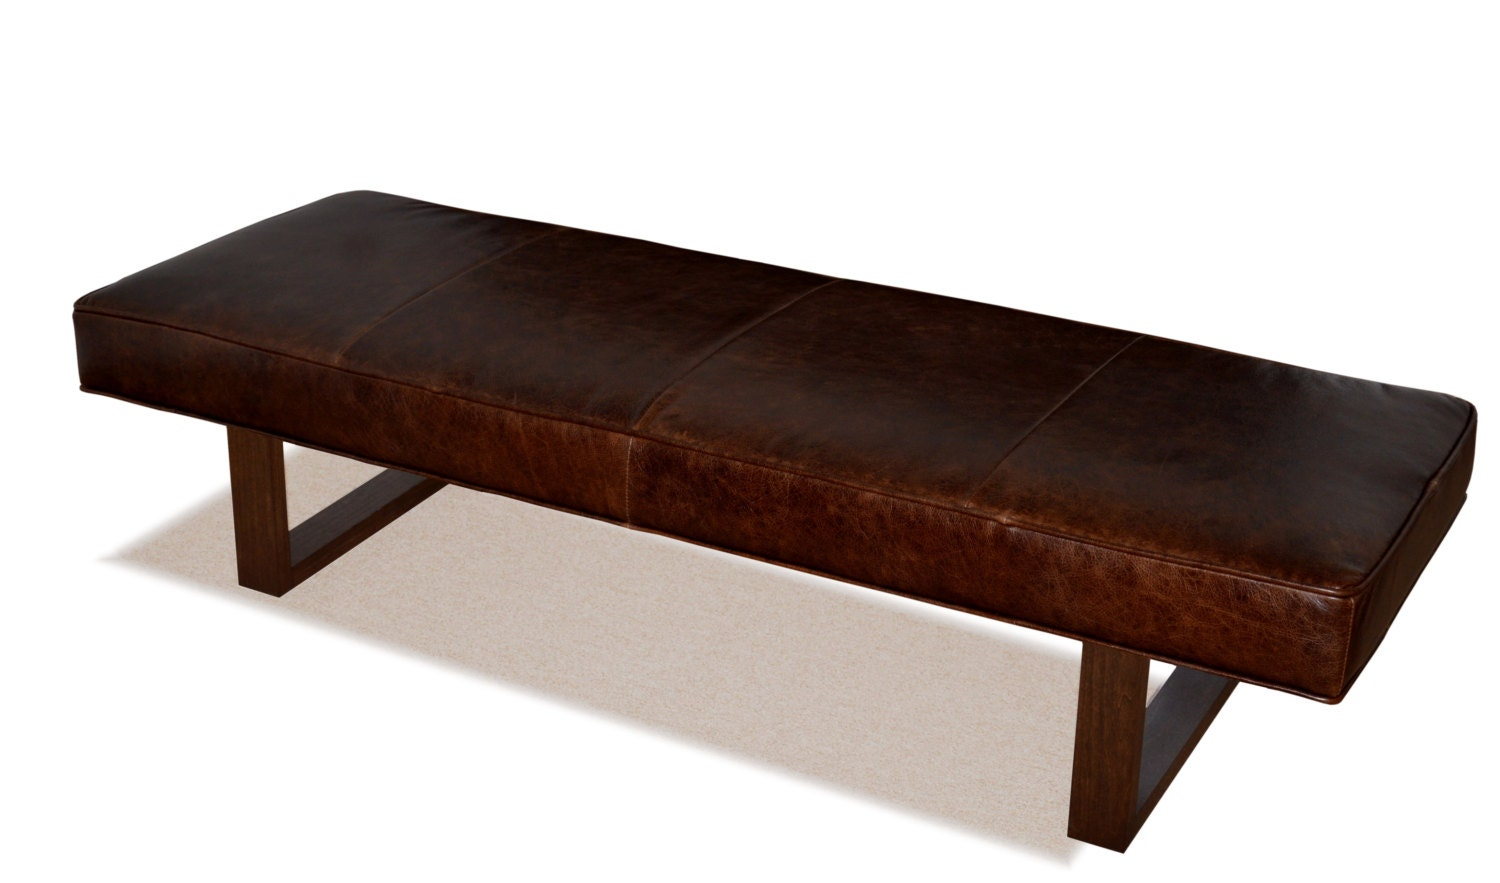 Genuine leather upholstered bench ottoman coffee table Ottoman bench coffee table